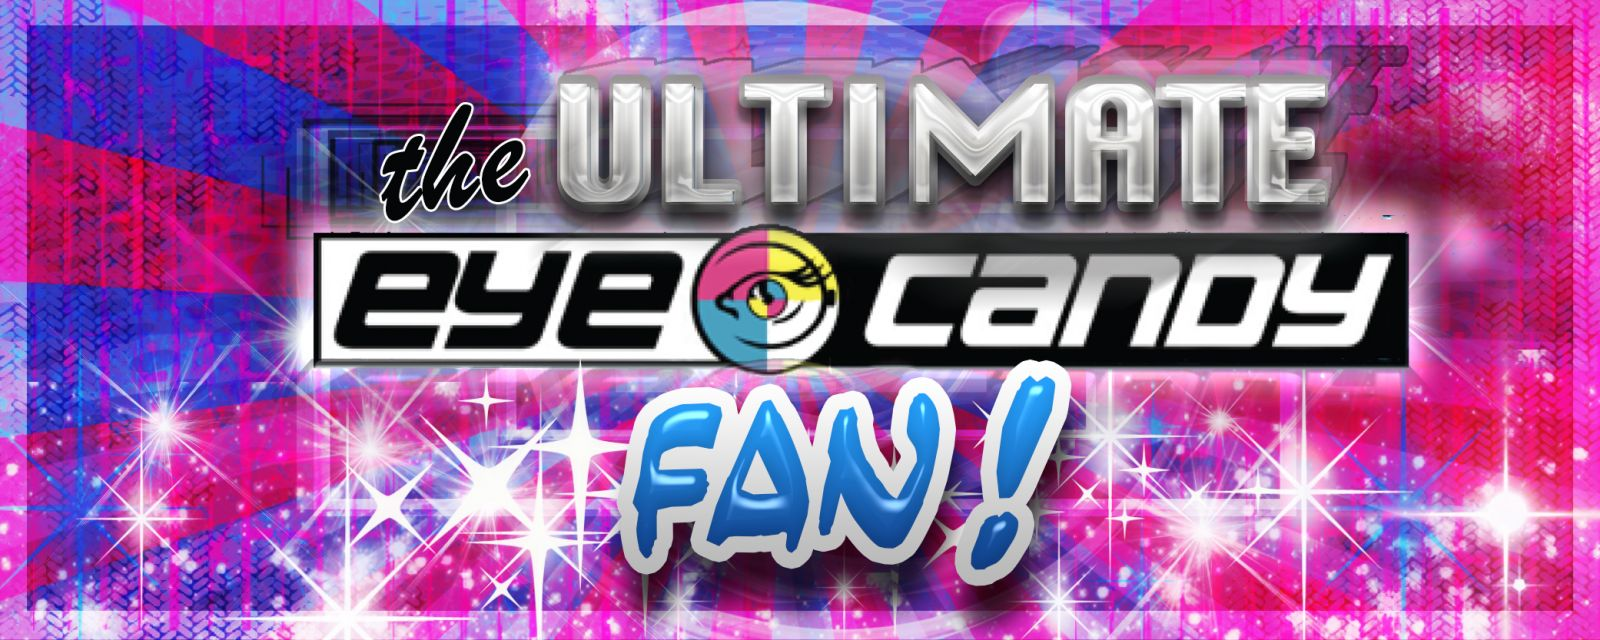 Eye Candy Signs Ultimate Fan Sweepstakes